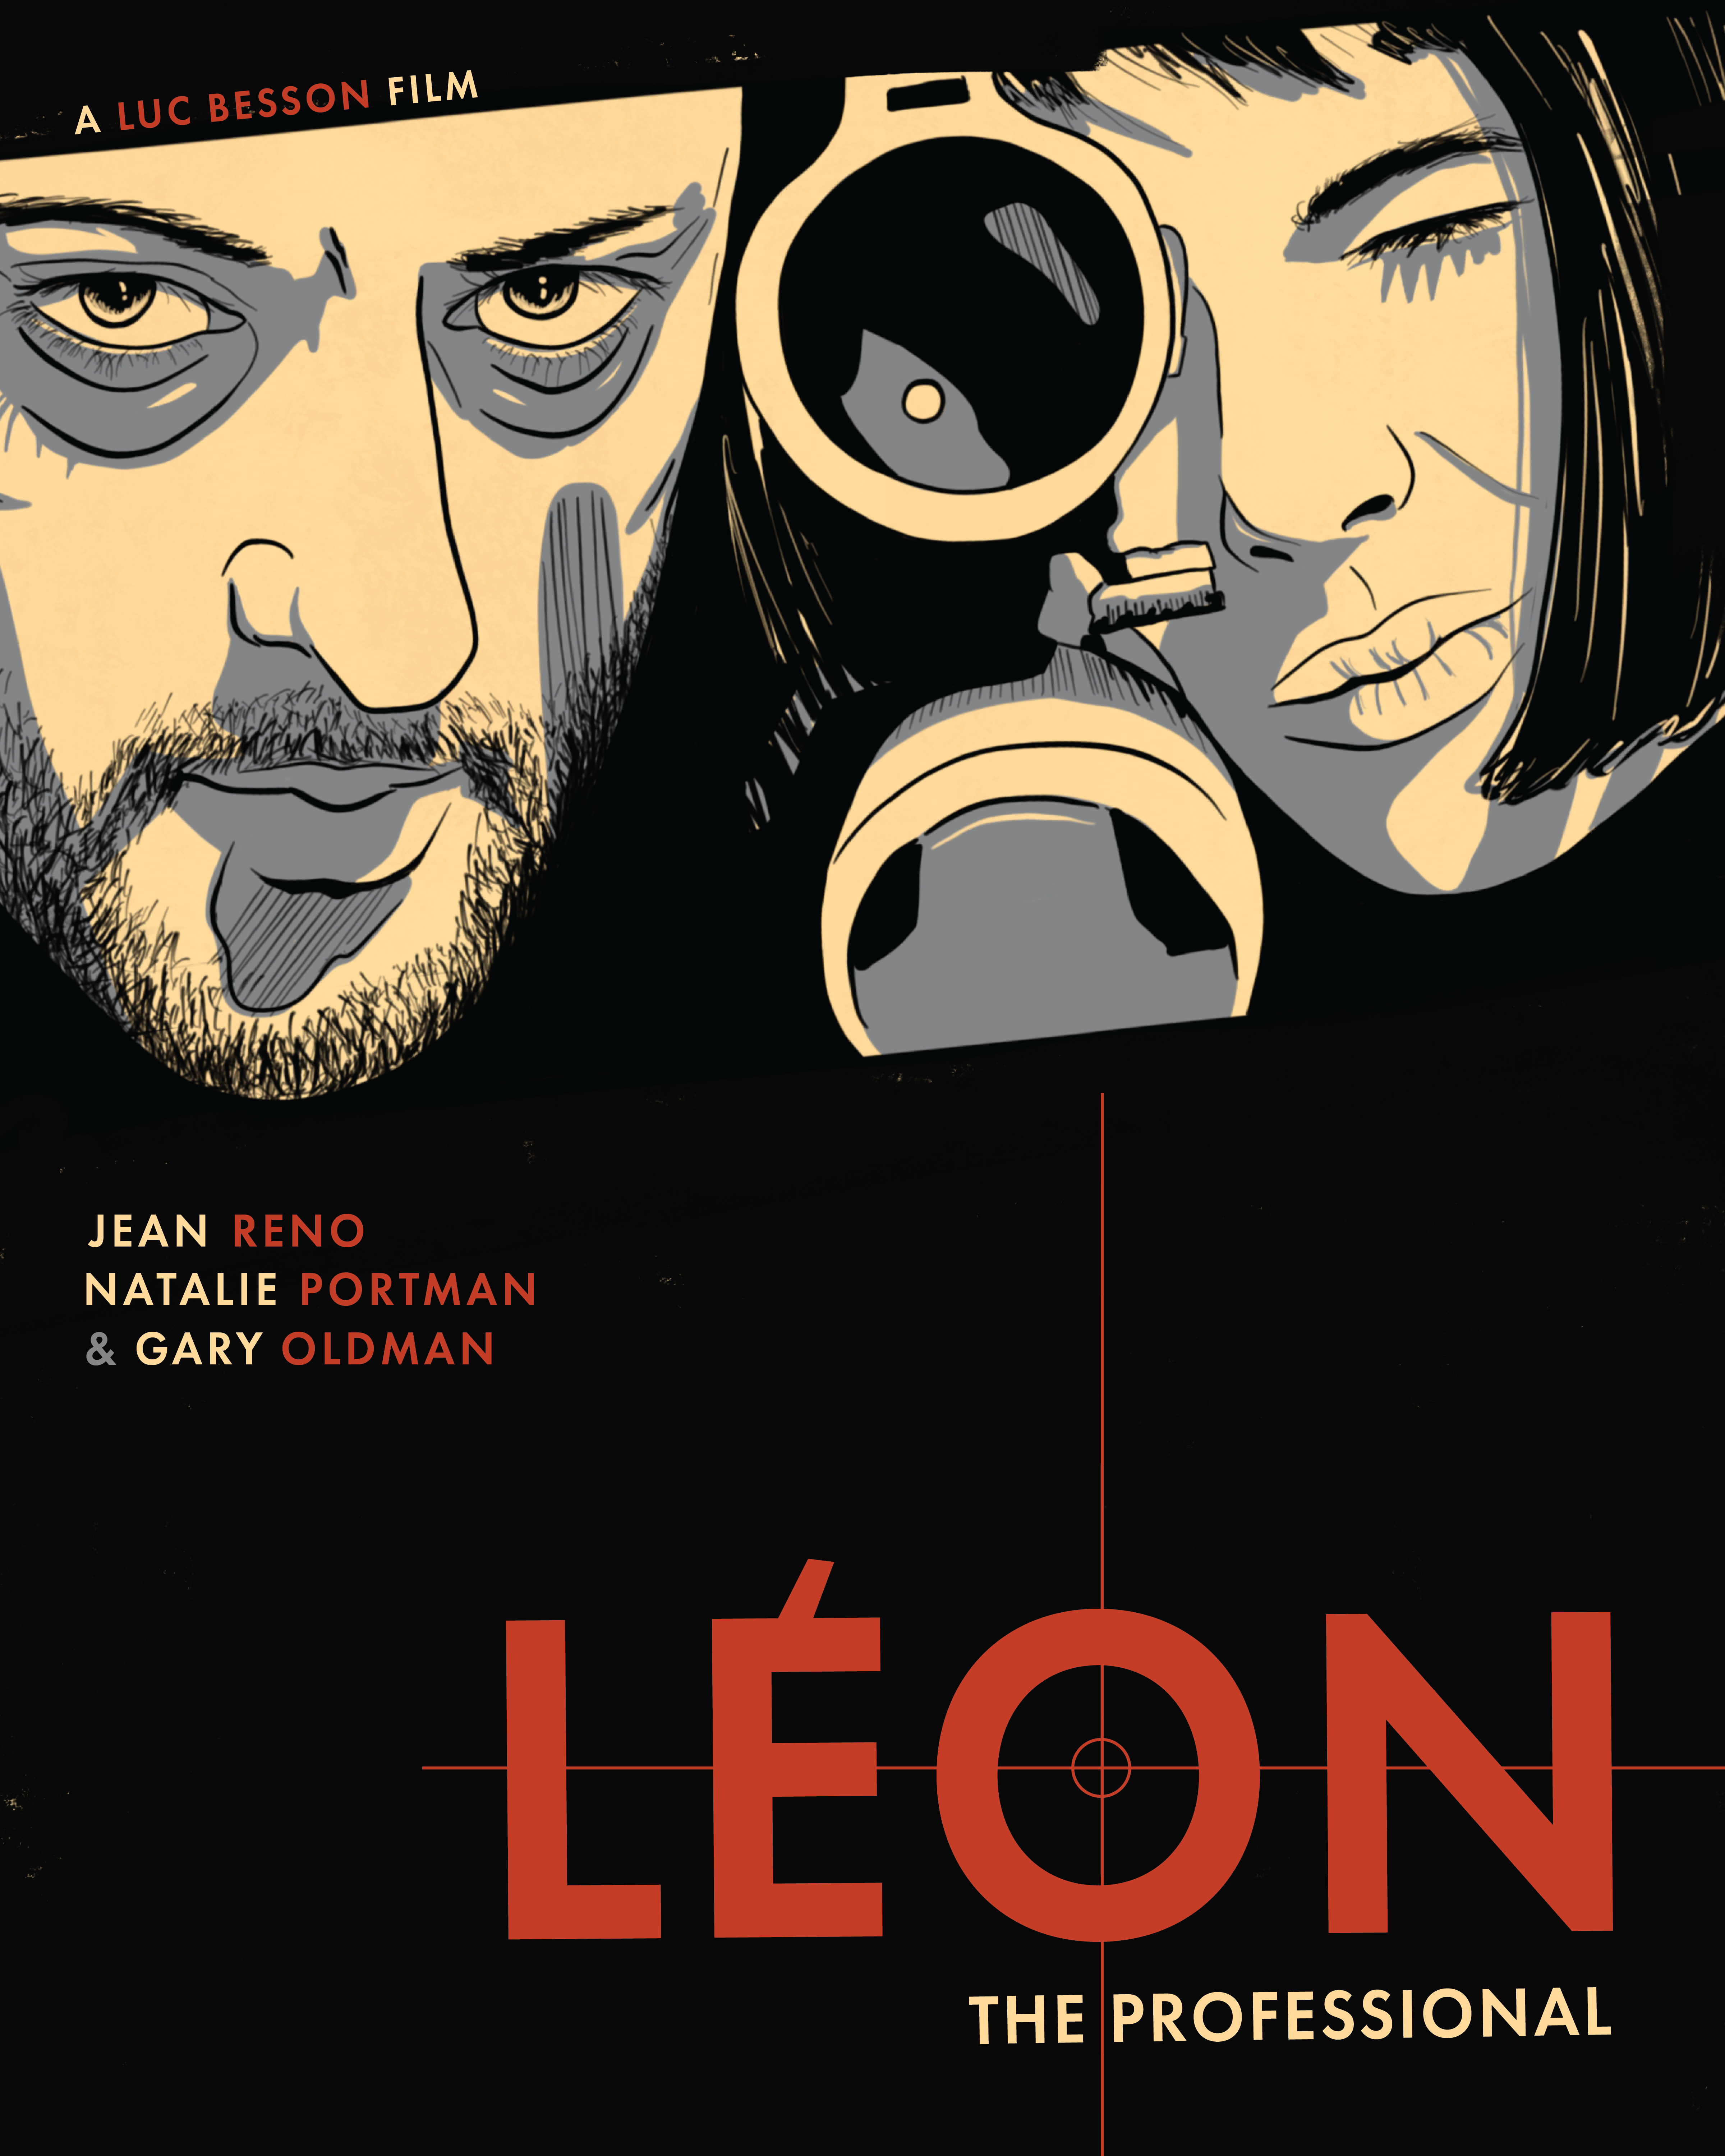 Leon: The Professional Illustrated Movie Poster